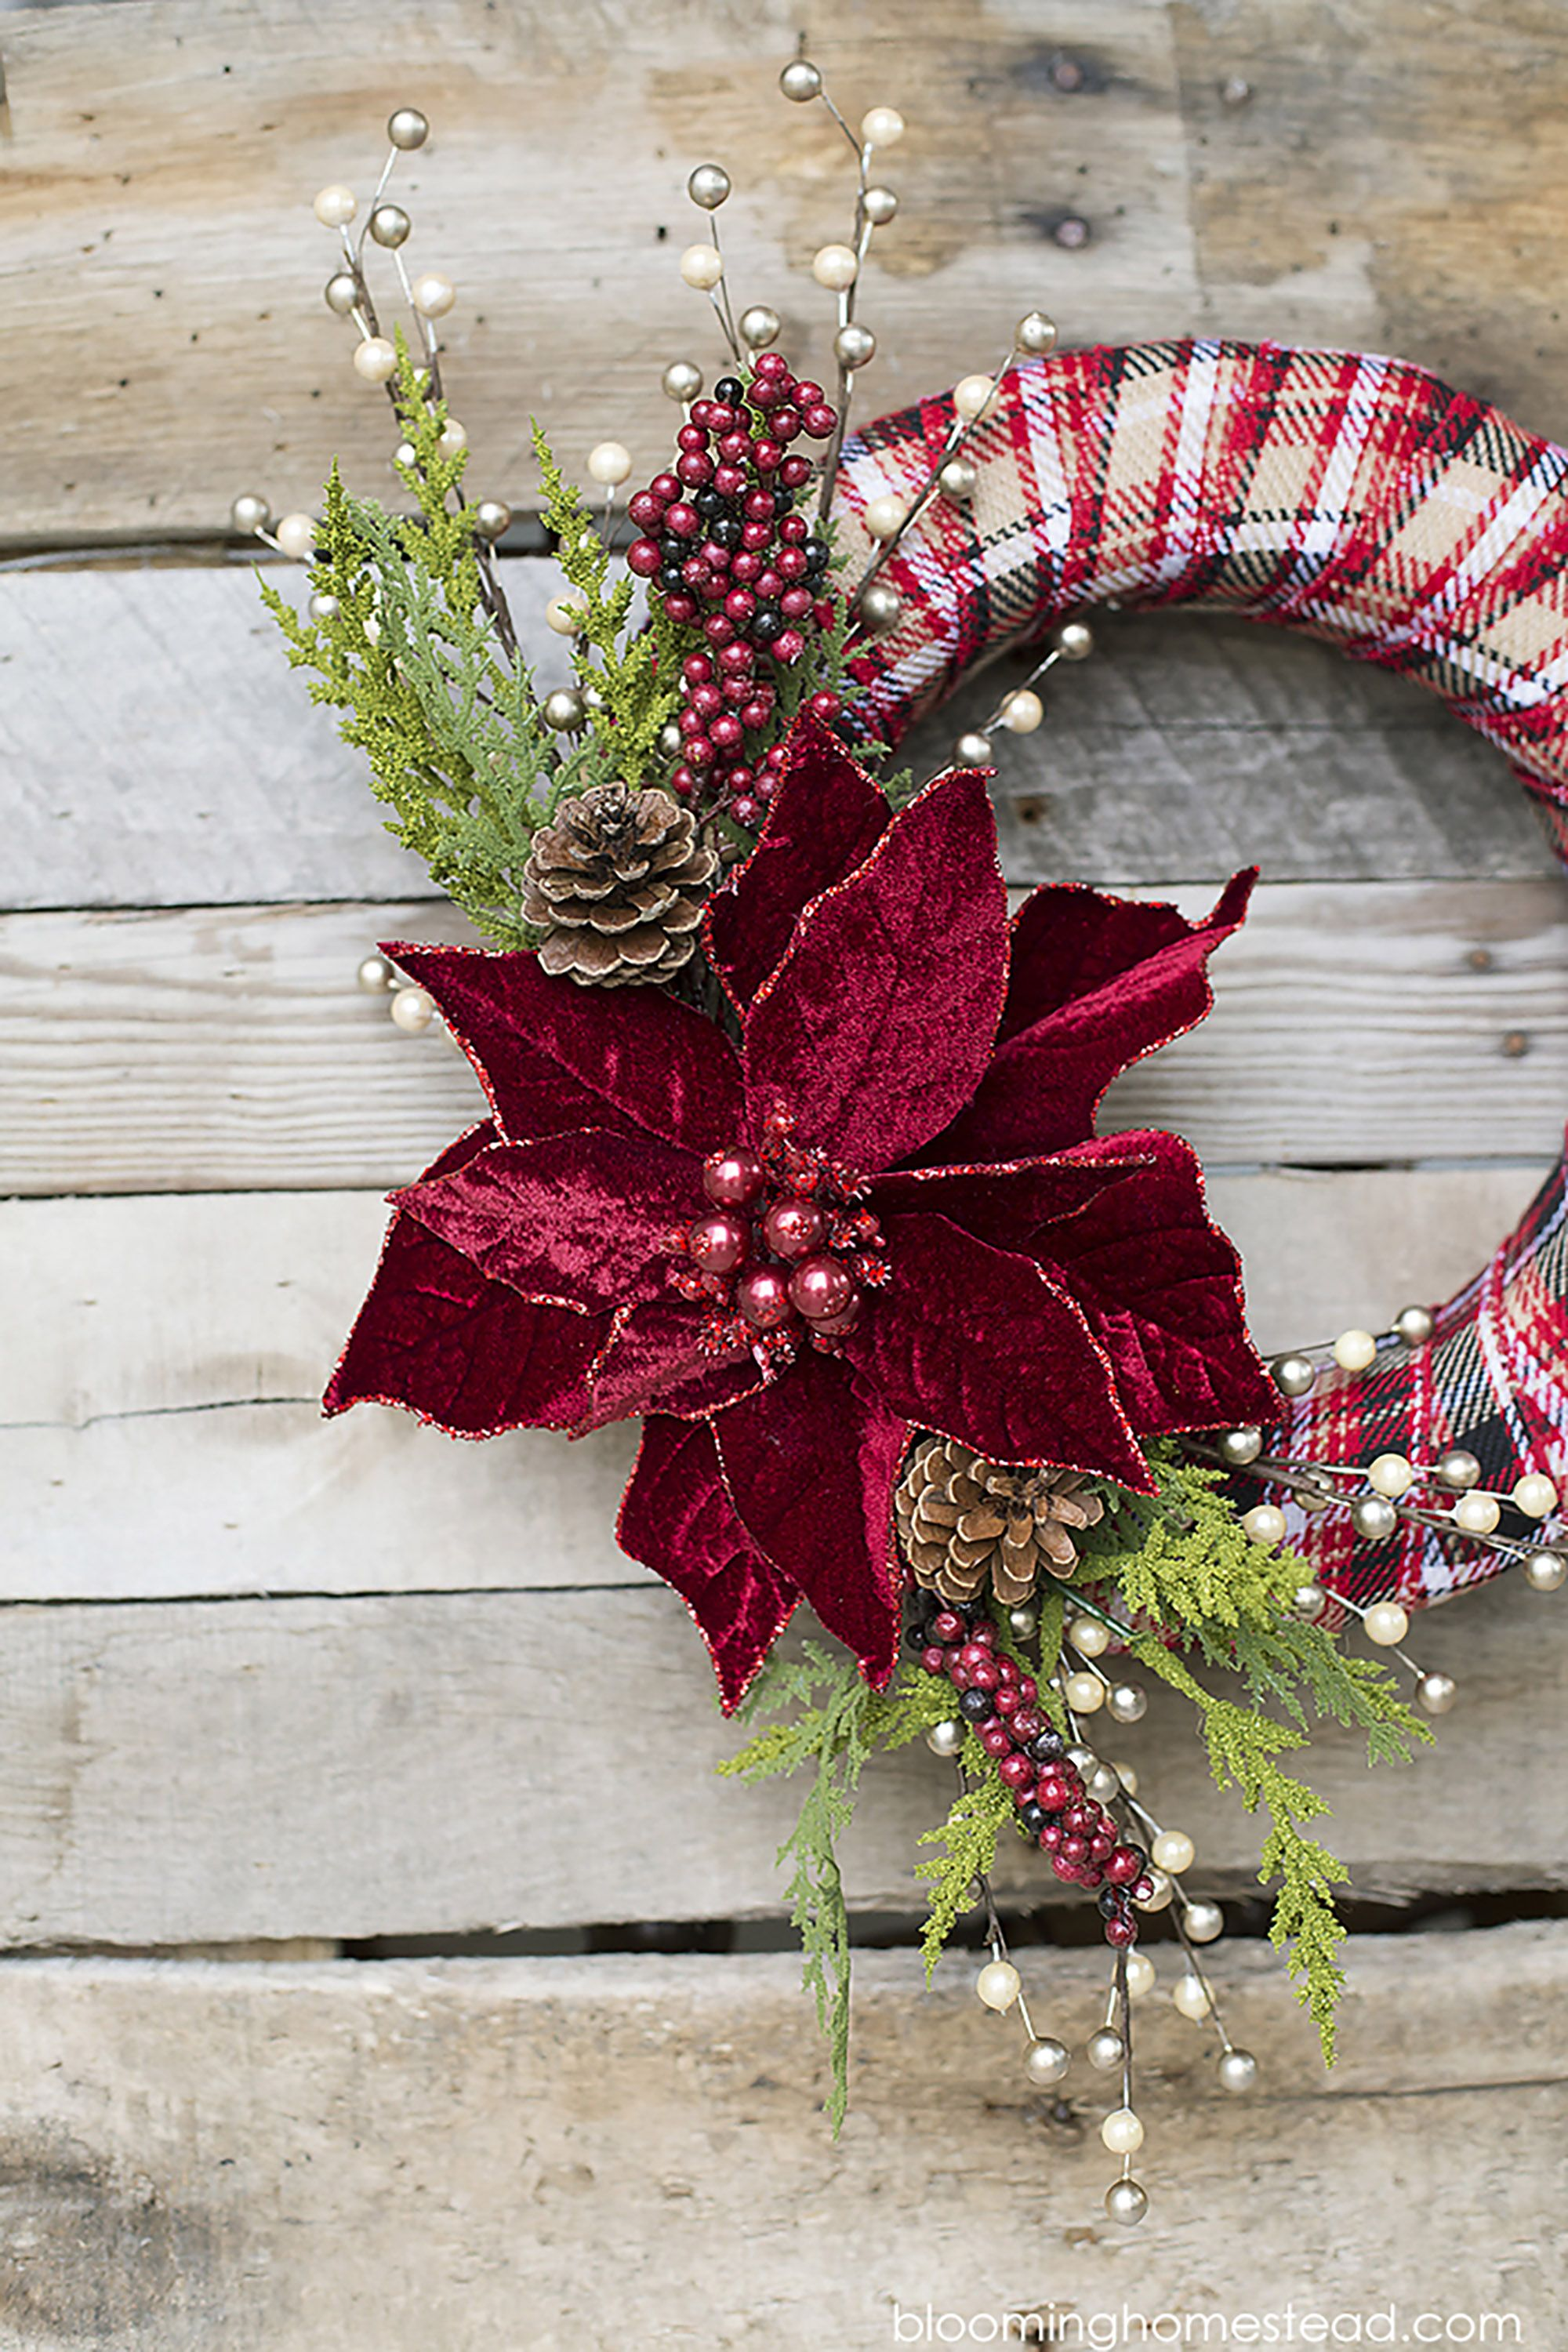 b2c00b3a2ed 50 Easy Christmas Crafts for Adults to Make - DIY Ideas for Holiday Craft  Projects